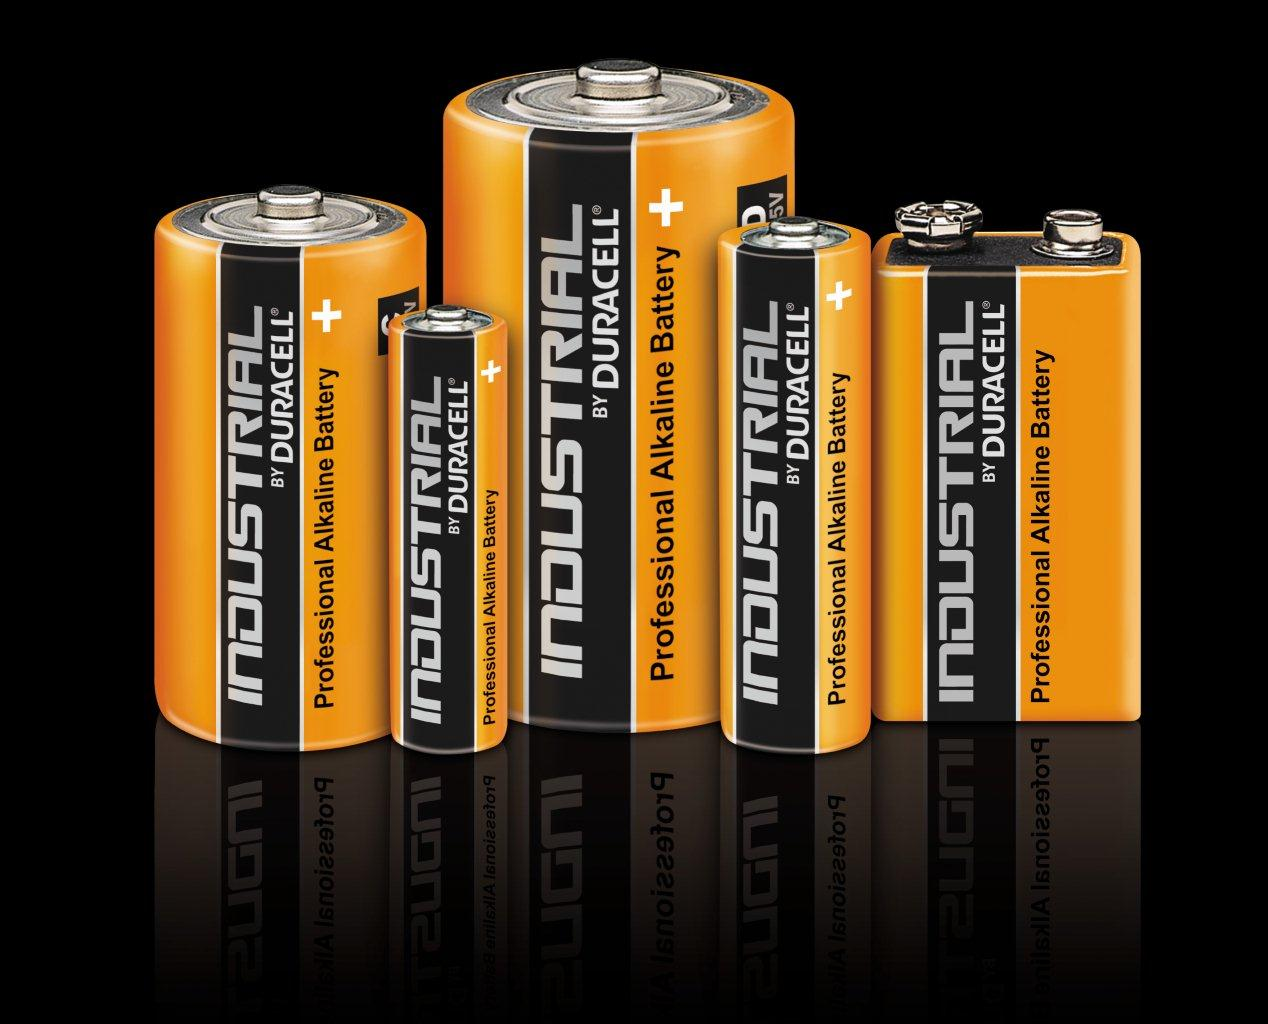 Batterie Duracell Industrial AA Mignon, 1,5V